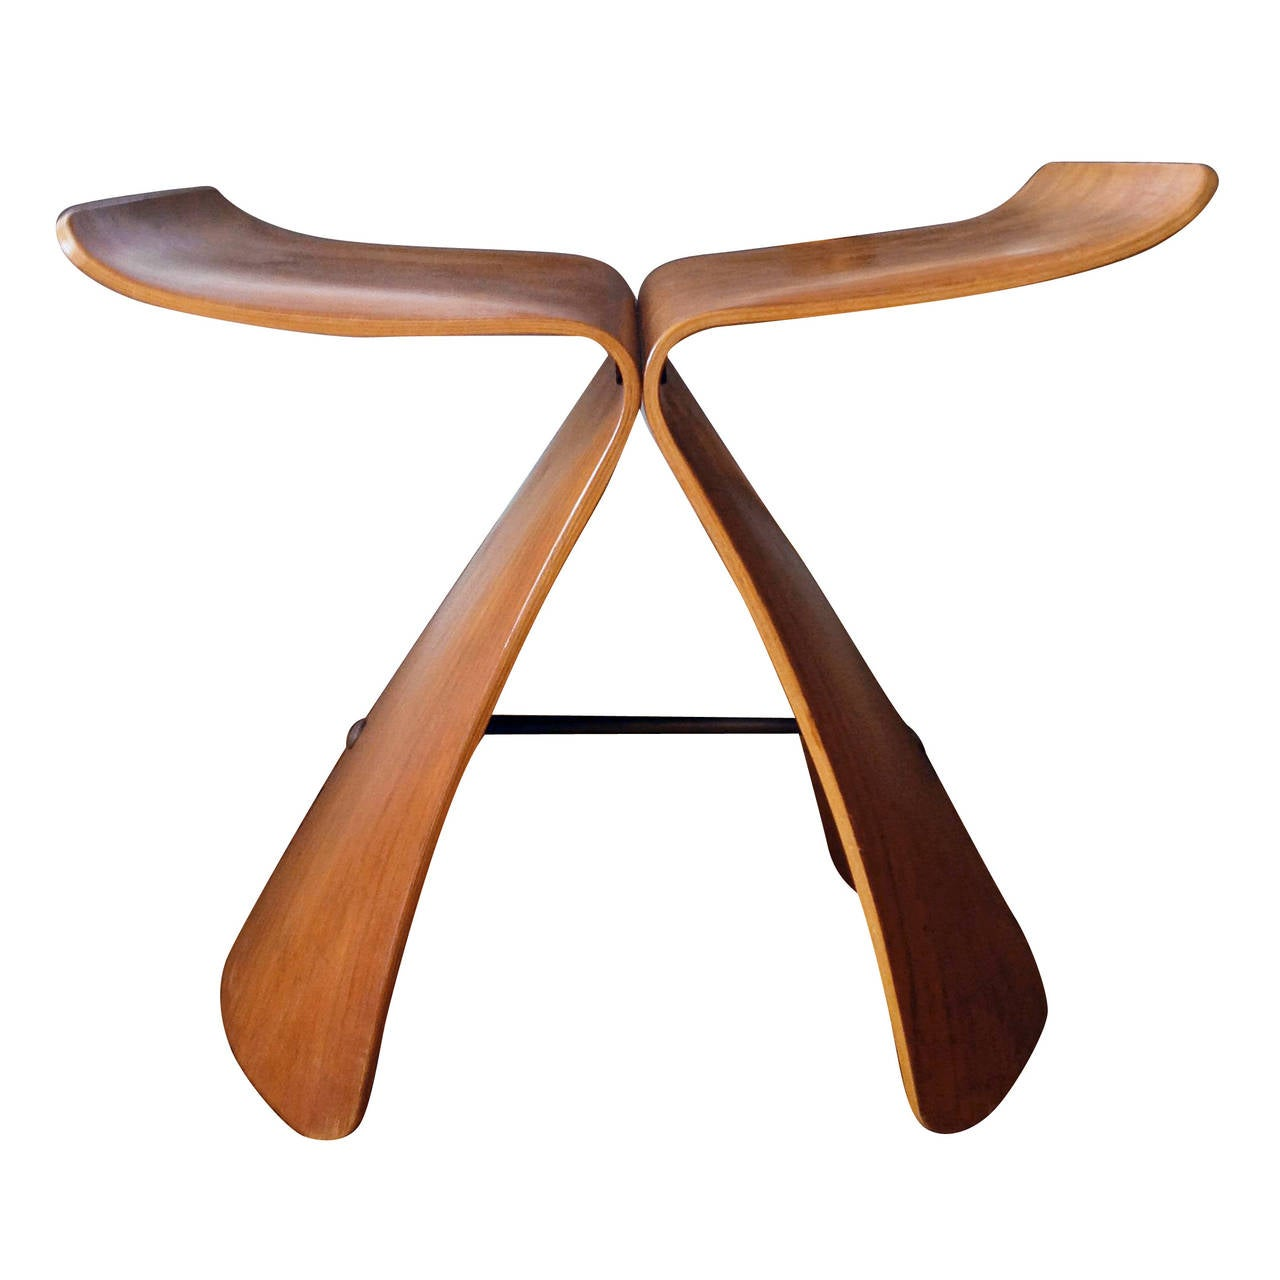 Butterfly chair sori yanagi - Rosewood Butterfly Stool By Sori Yanagi 1